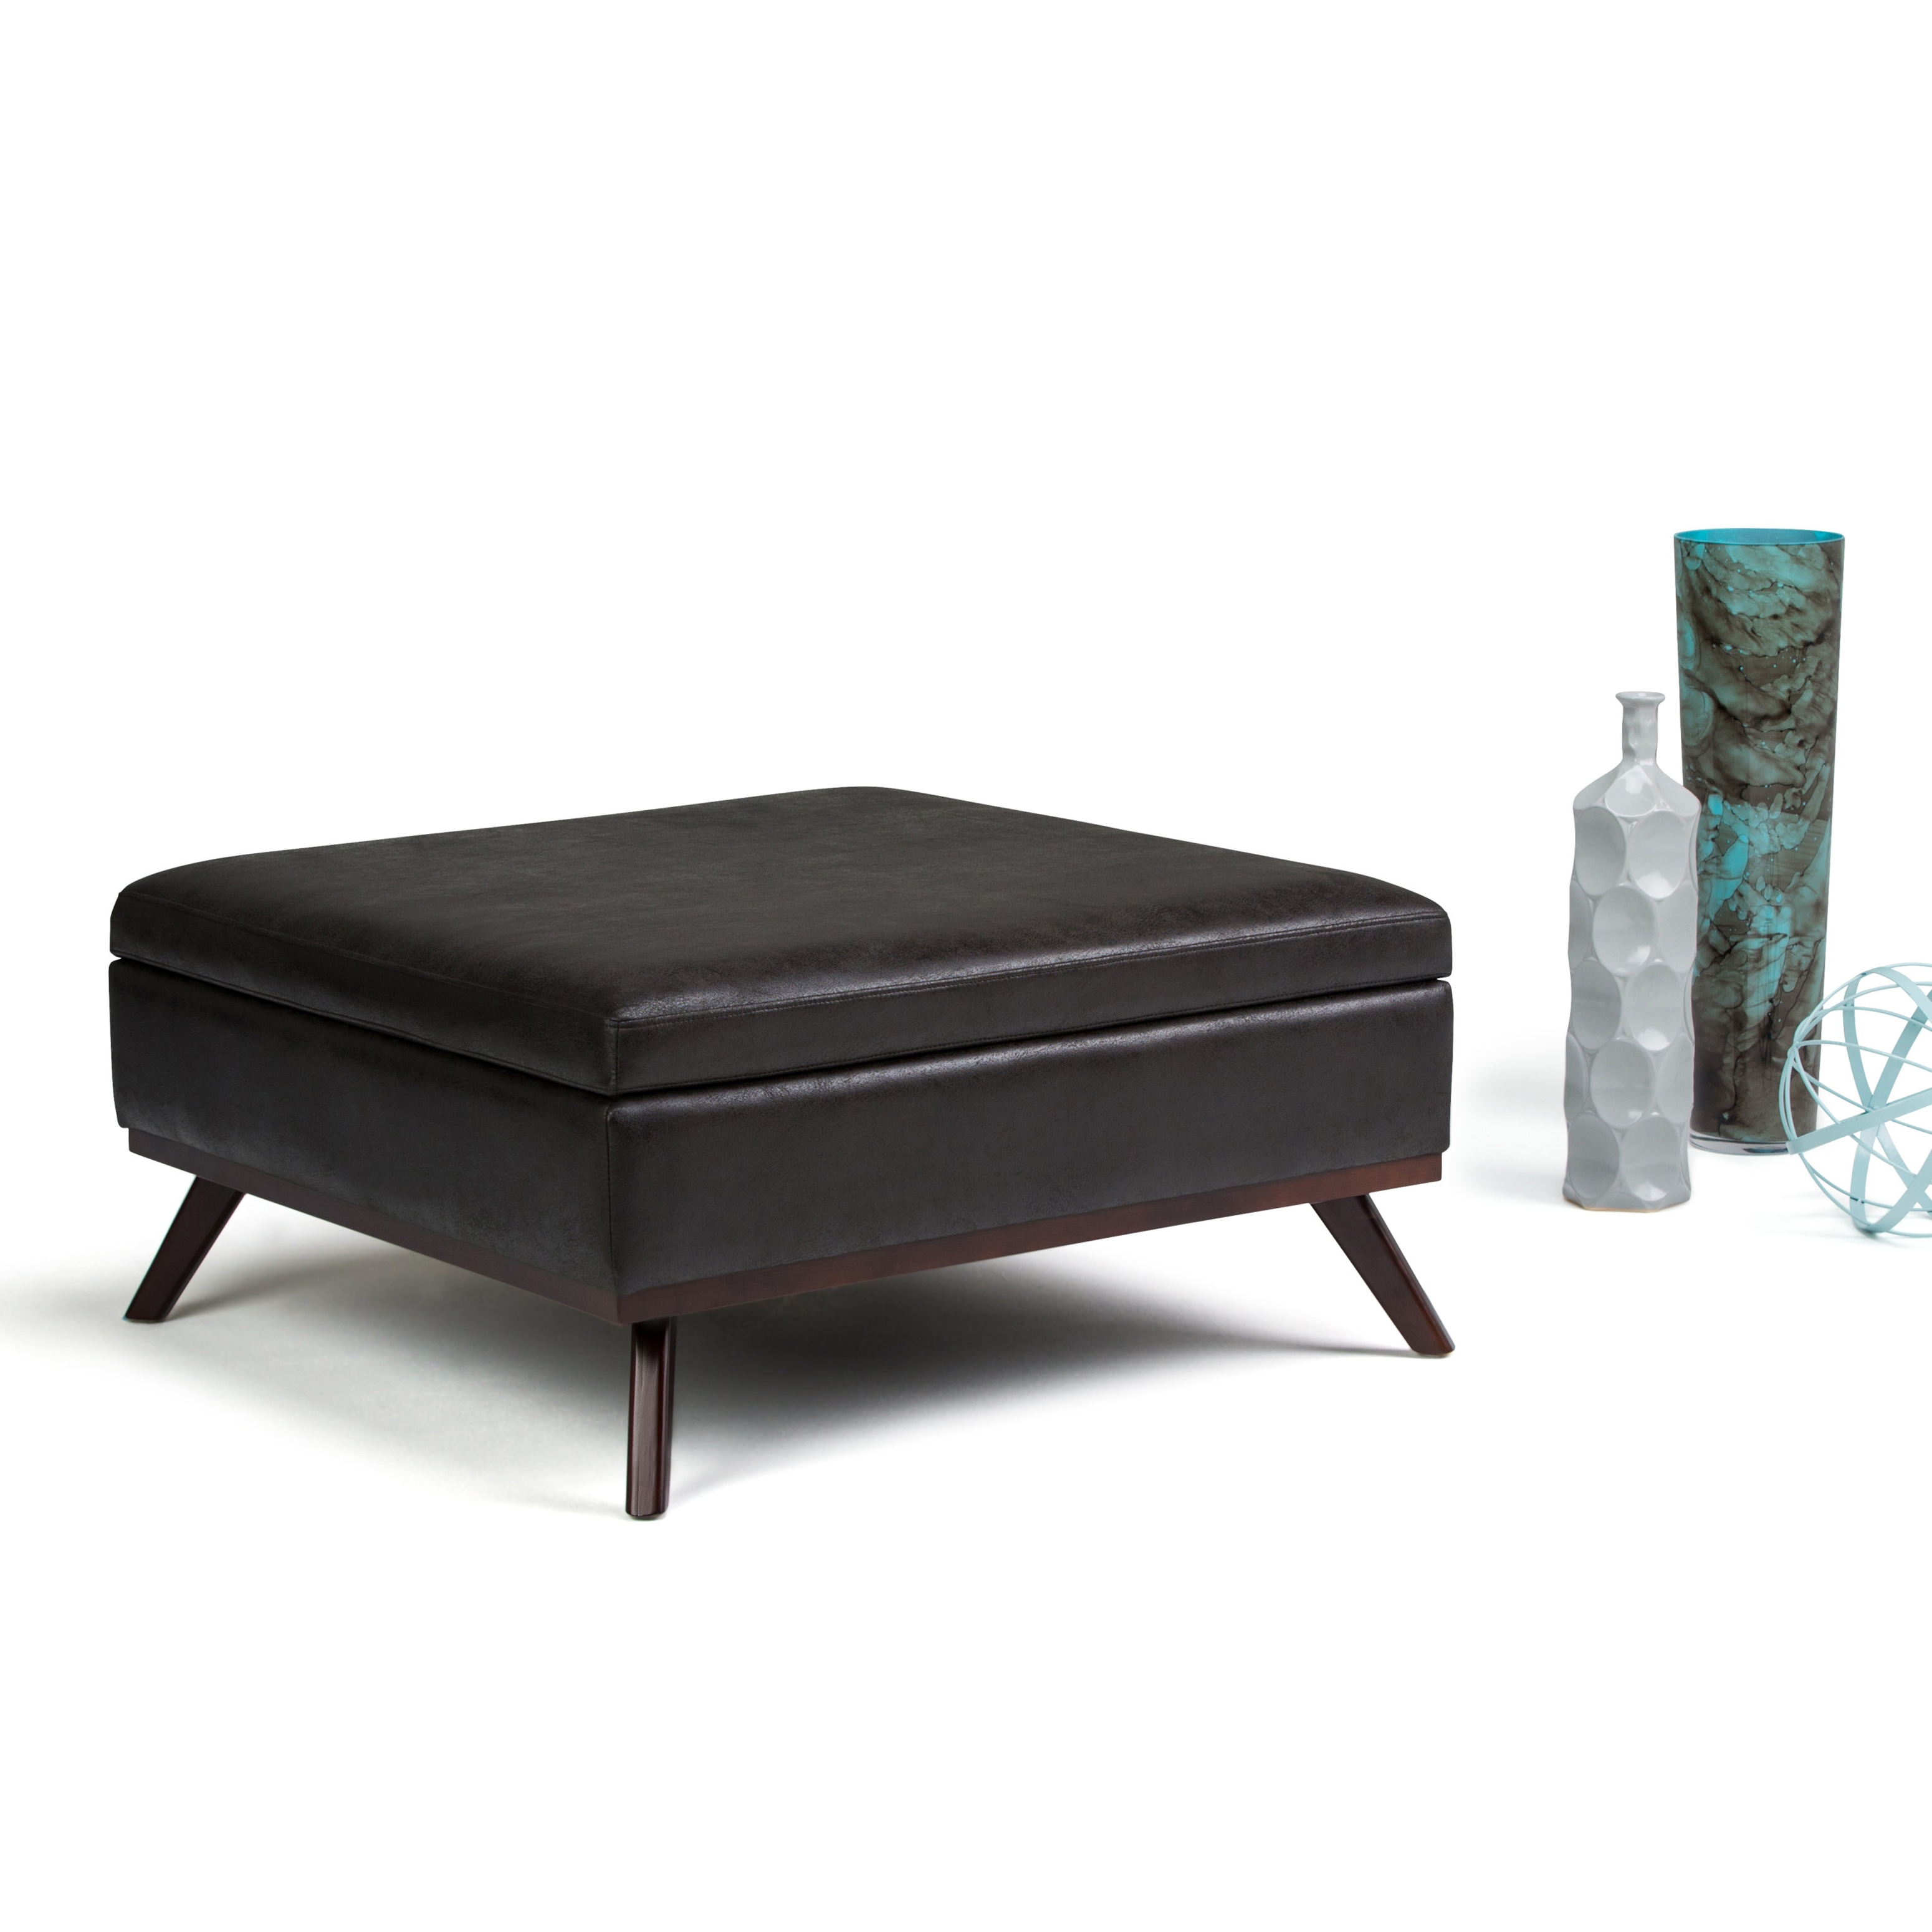 shape products collection square moss l ottoman s